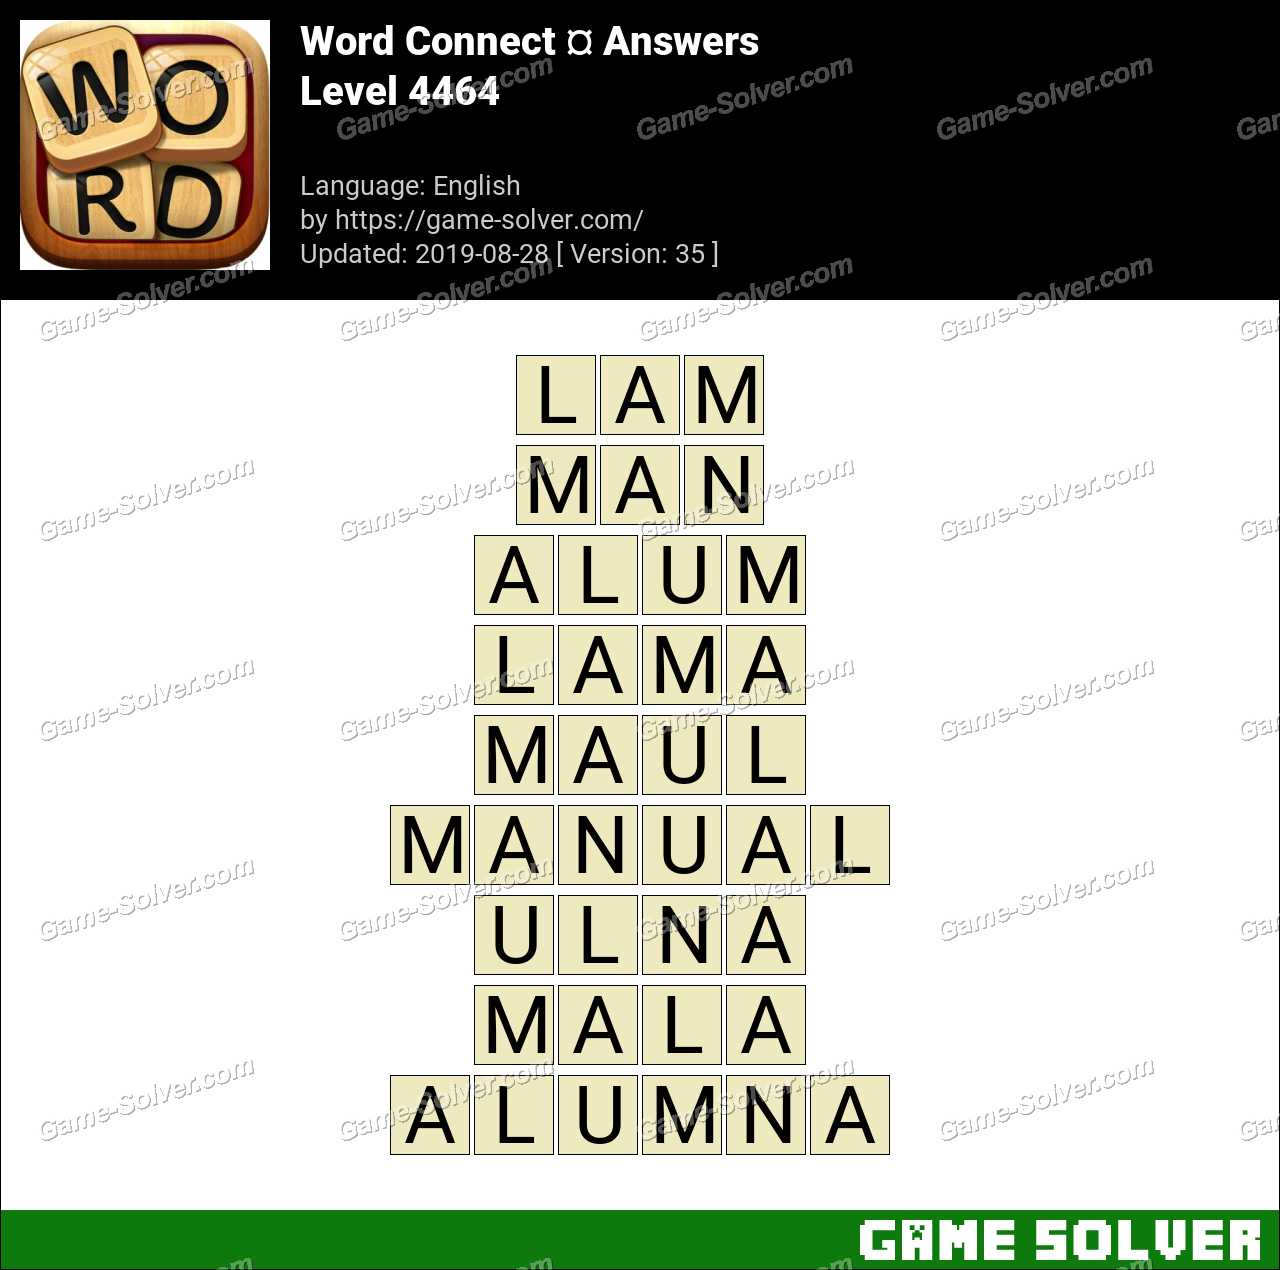 Word Connect Level 4464 Answers